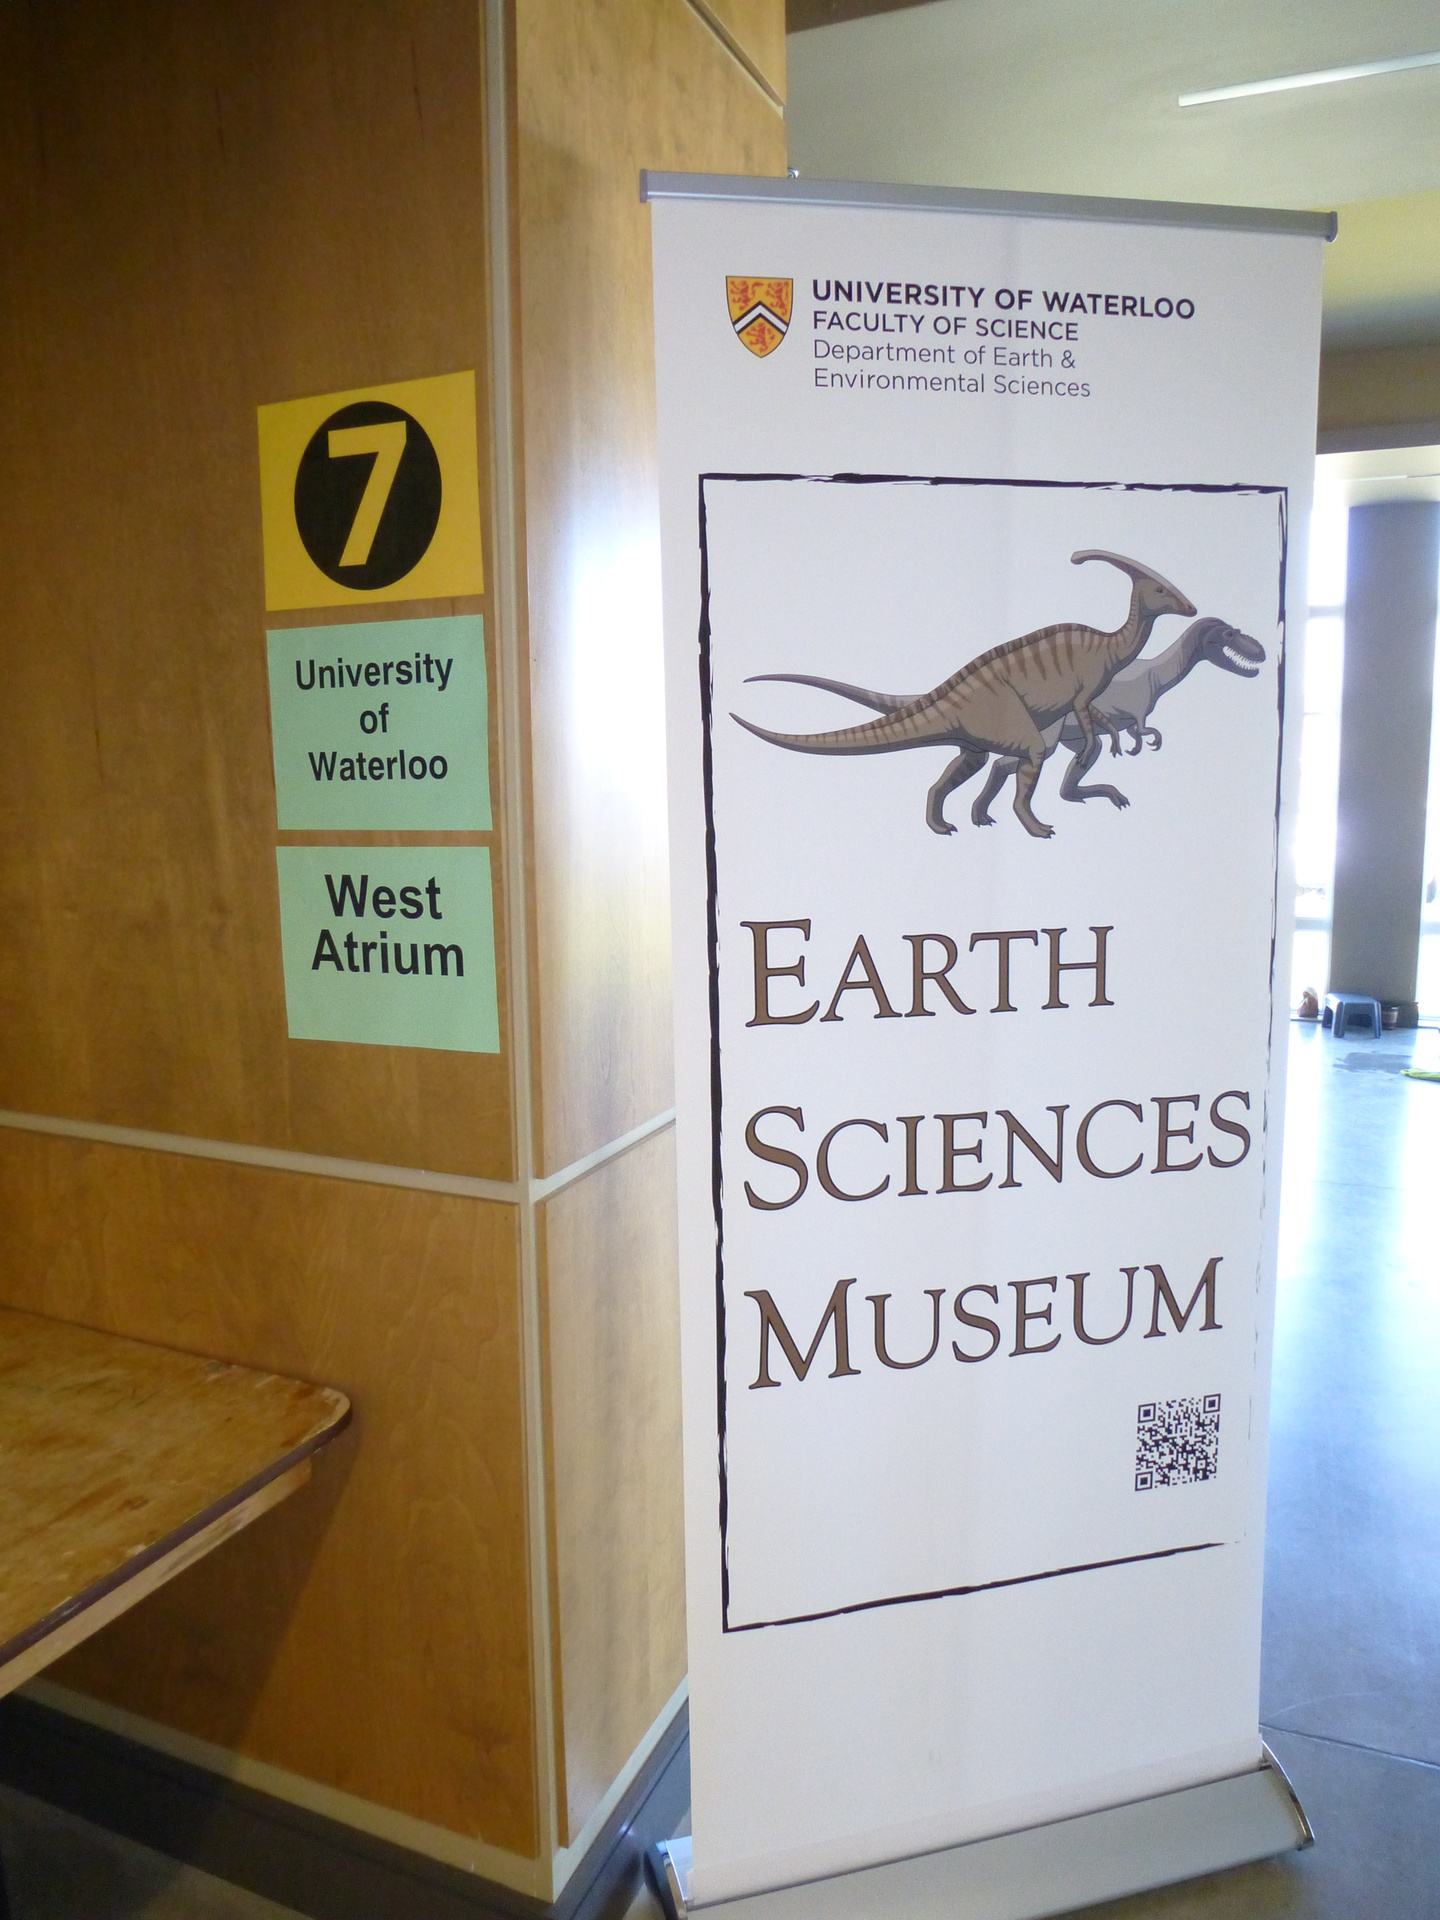 Earth Sciences Museum - University of Waterloo